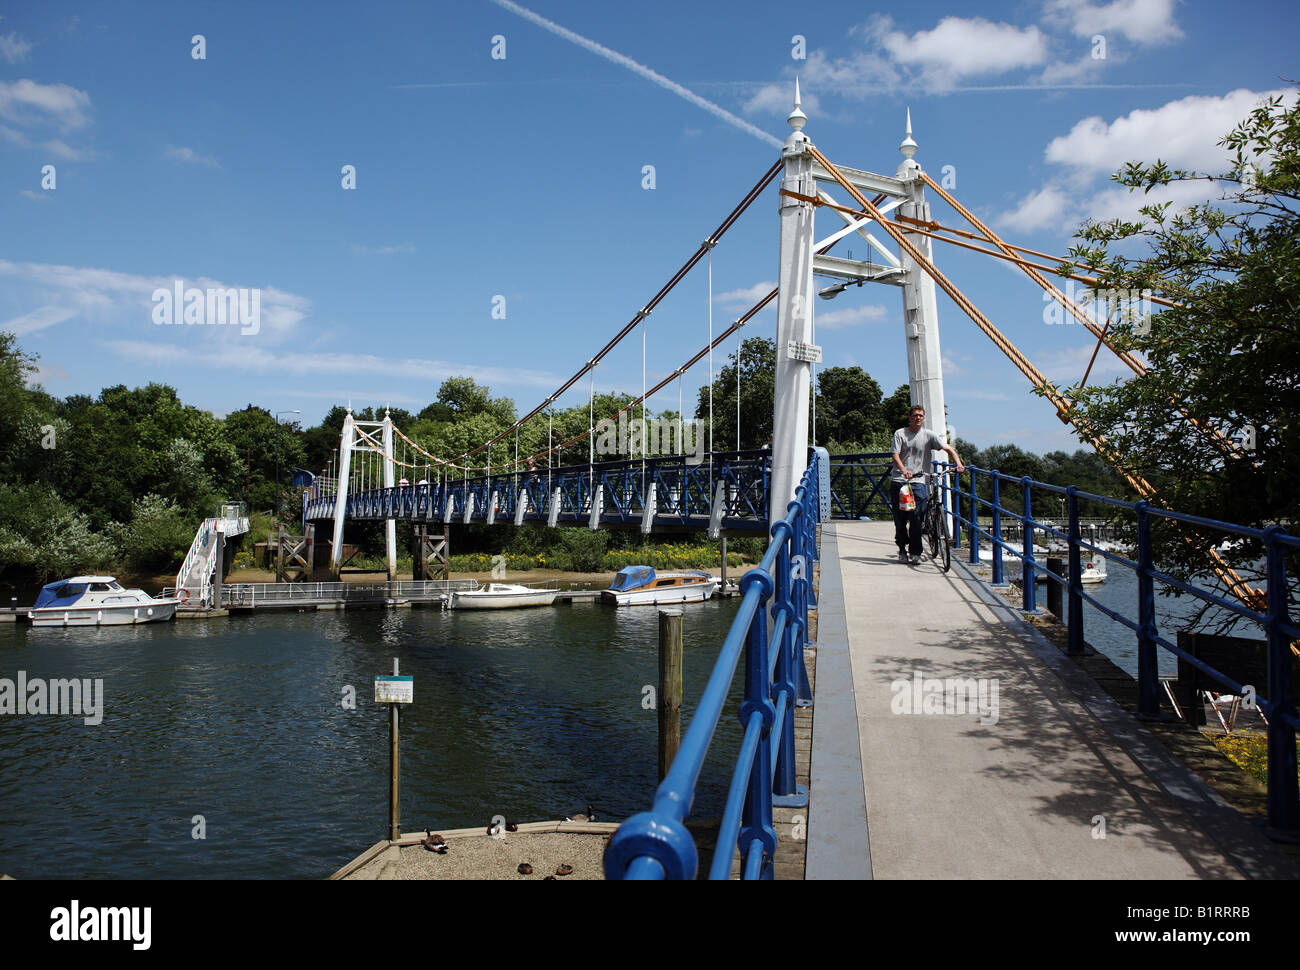 Victorian footbridge spanning the River Thames. - Stock Image